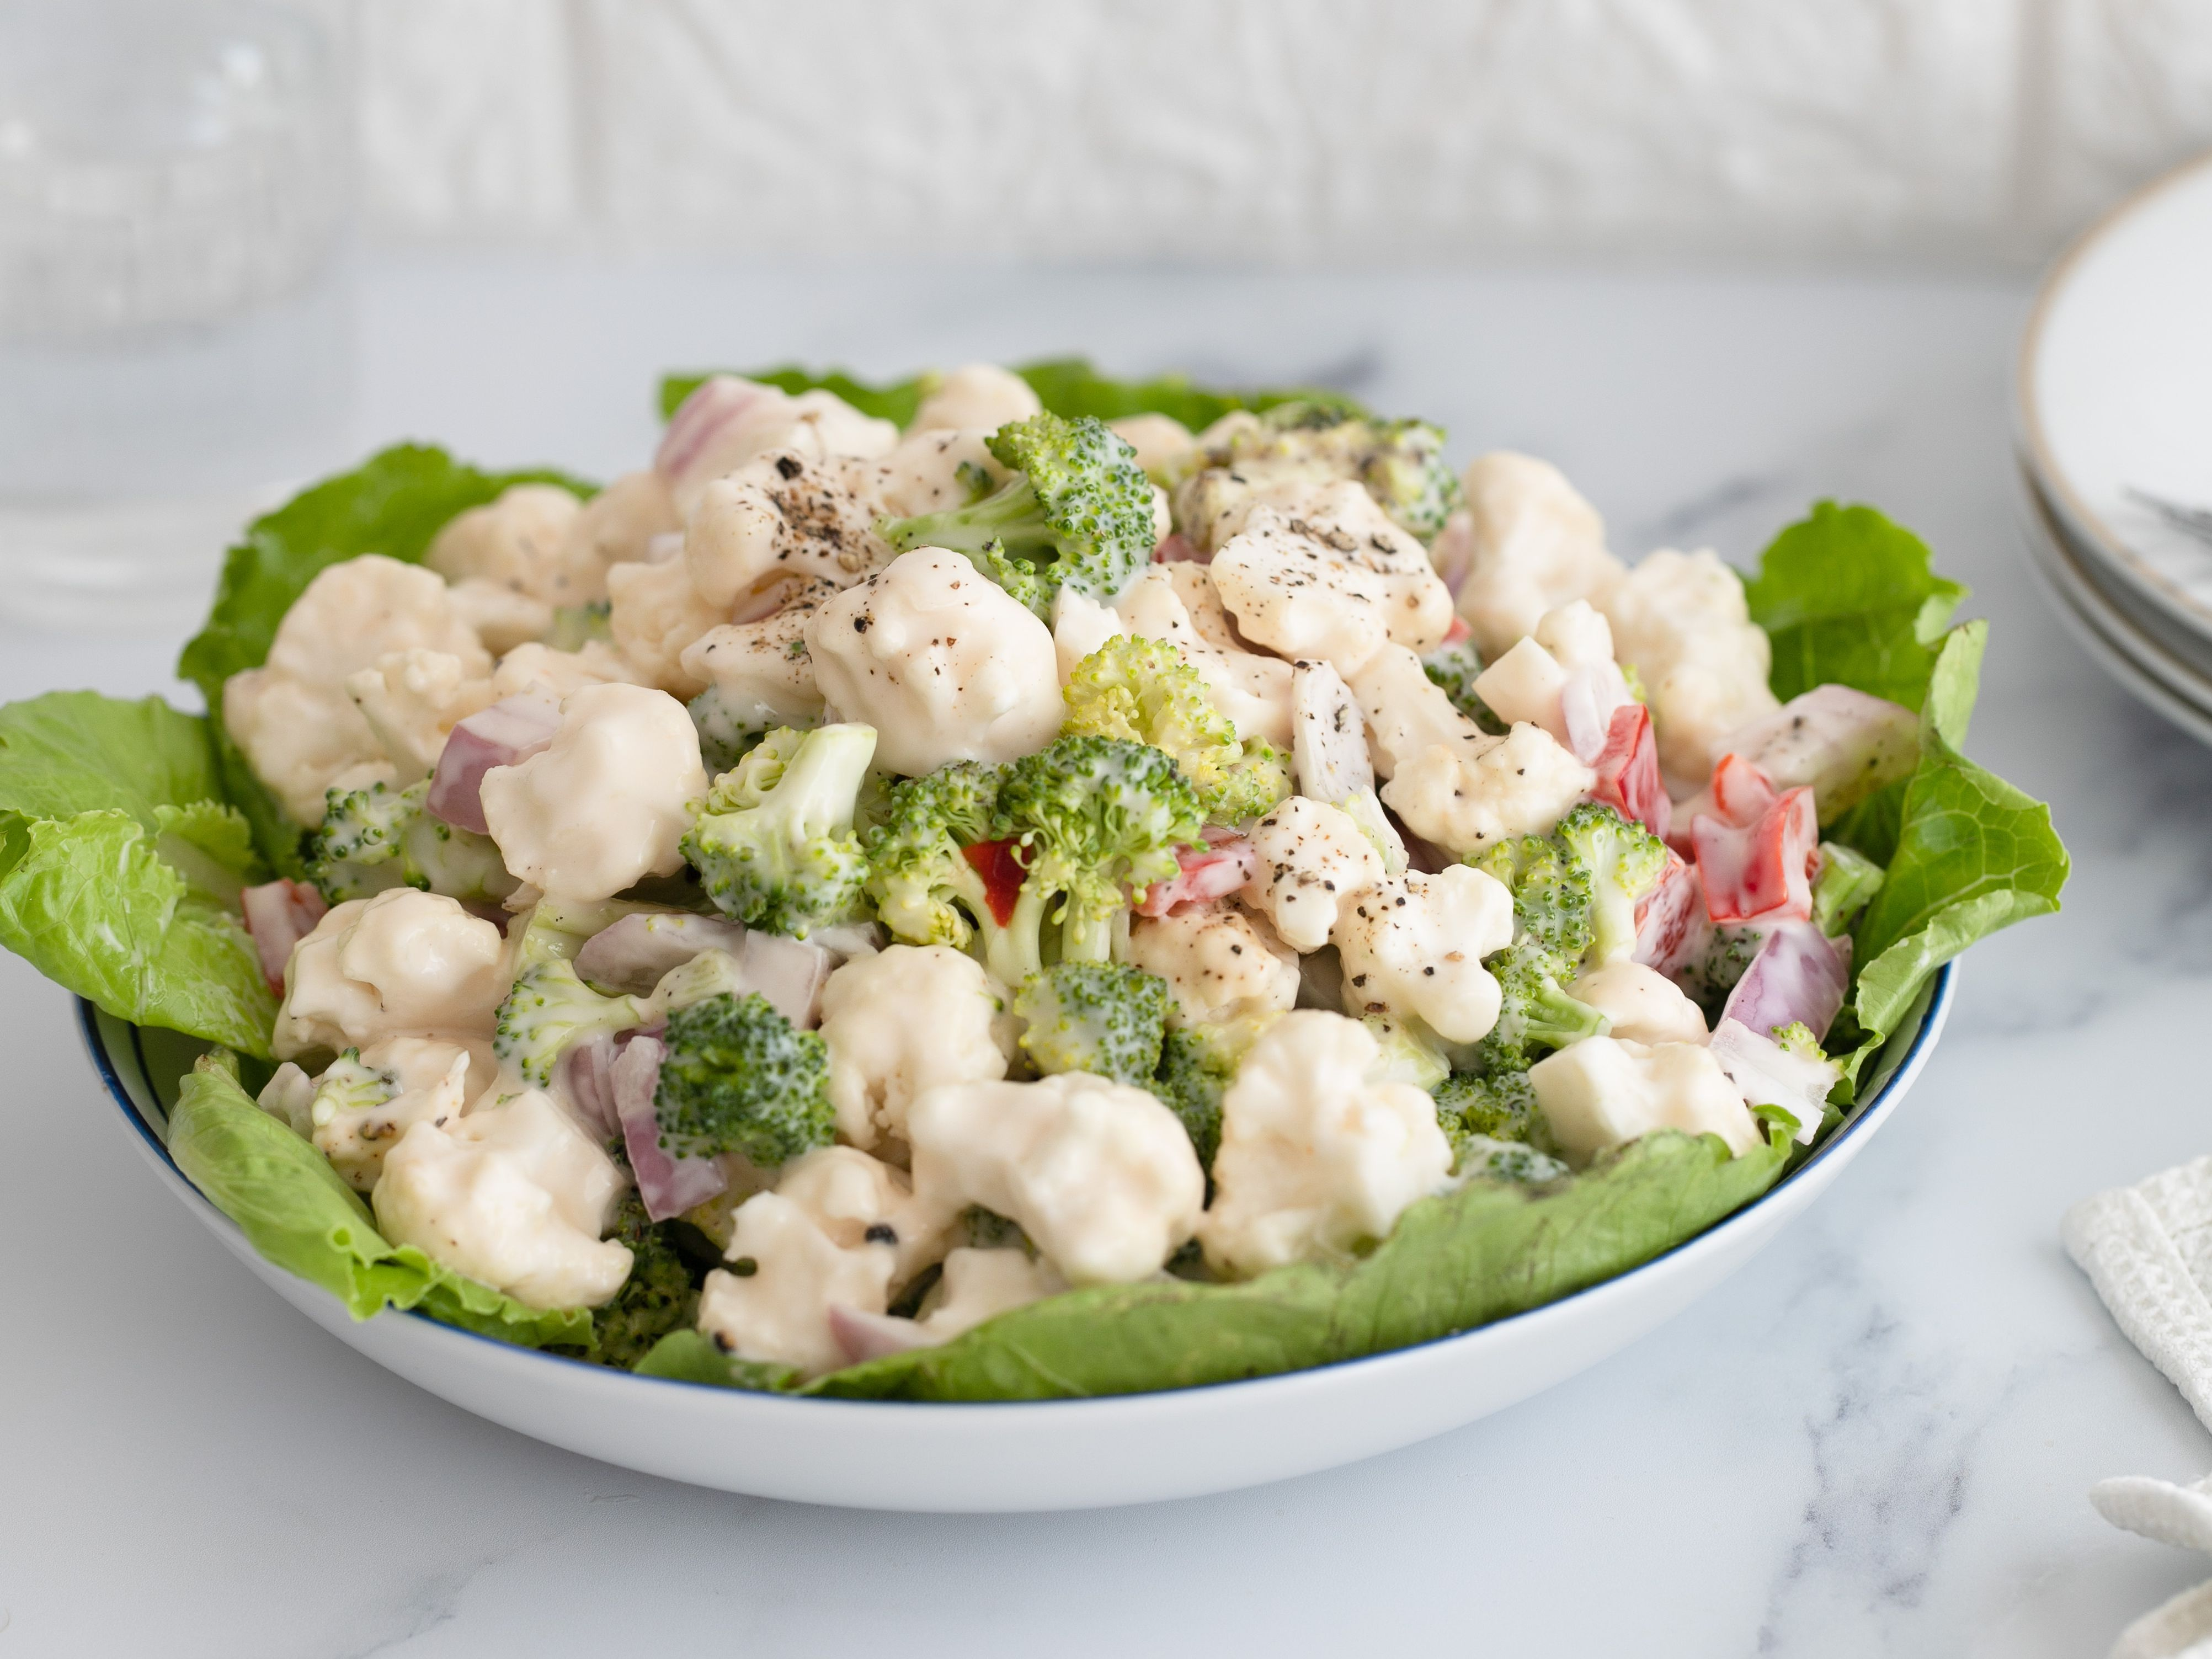 Cauliflower And Broccoli Salad With Mayonnaise